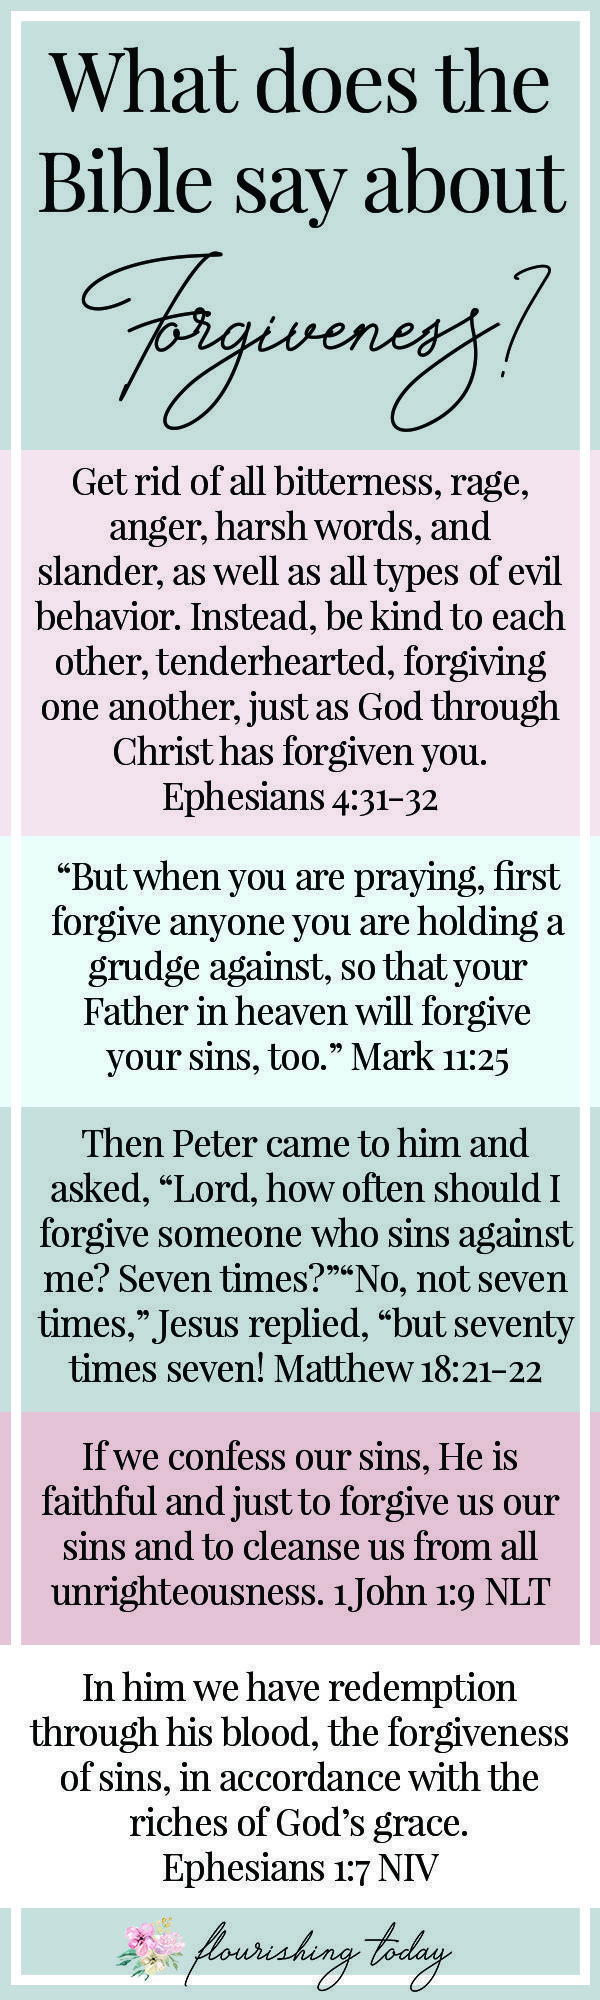 What Does The Bible Say About Self Healing